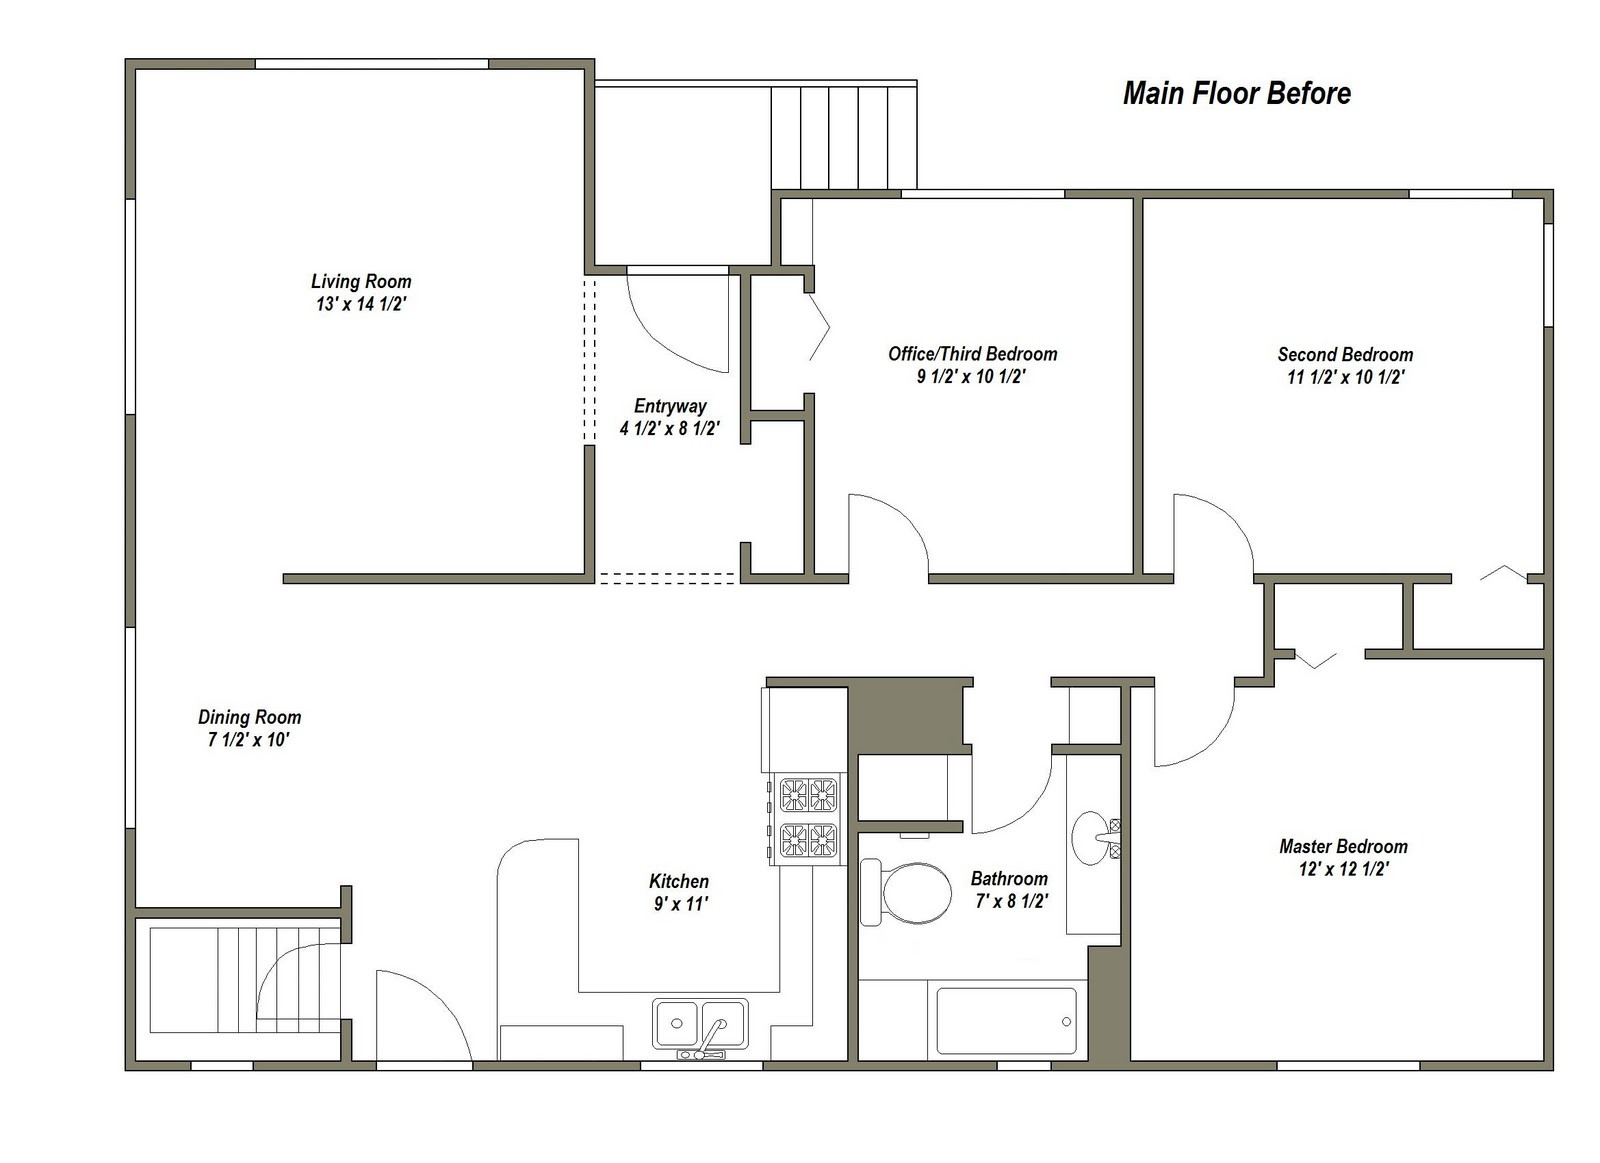 Best ideas about Small Office Floor Plan . Save or Pin Business Plan Small Building Plans mercial Floor Retail Now.